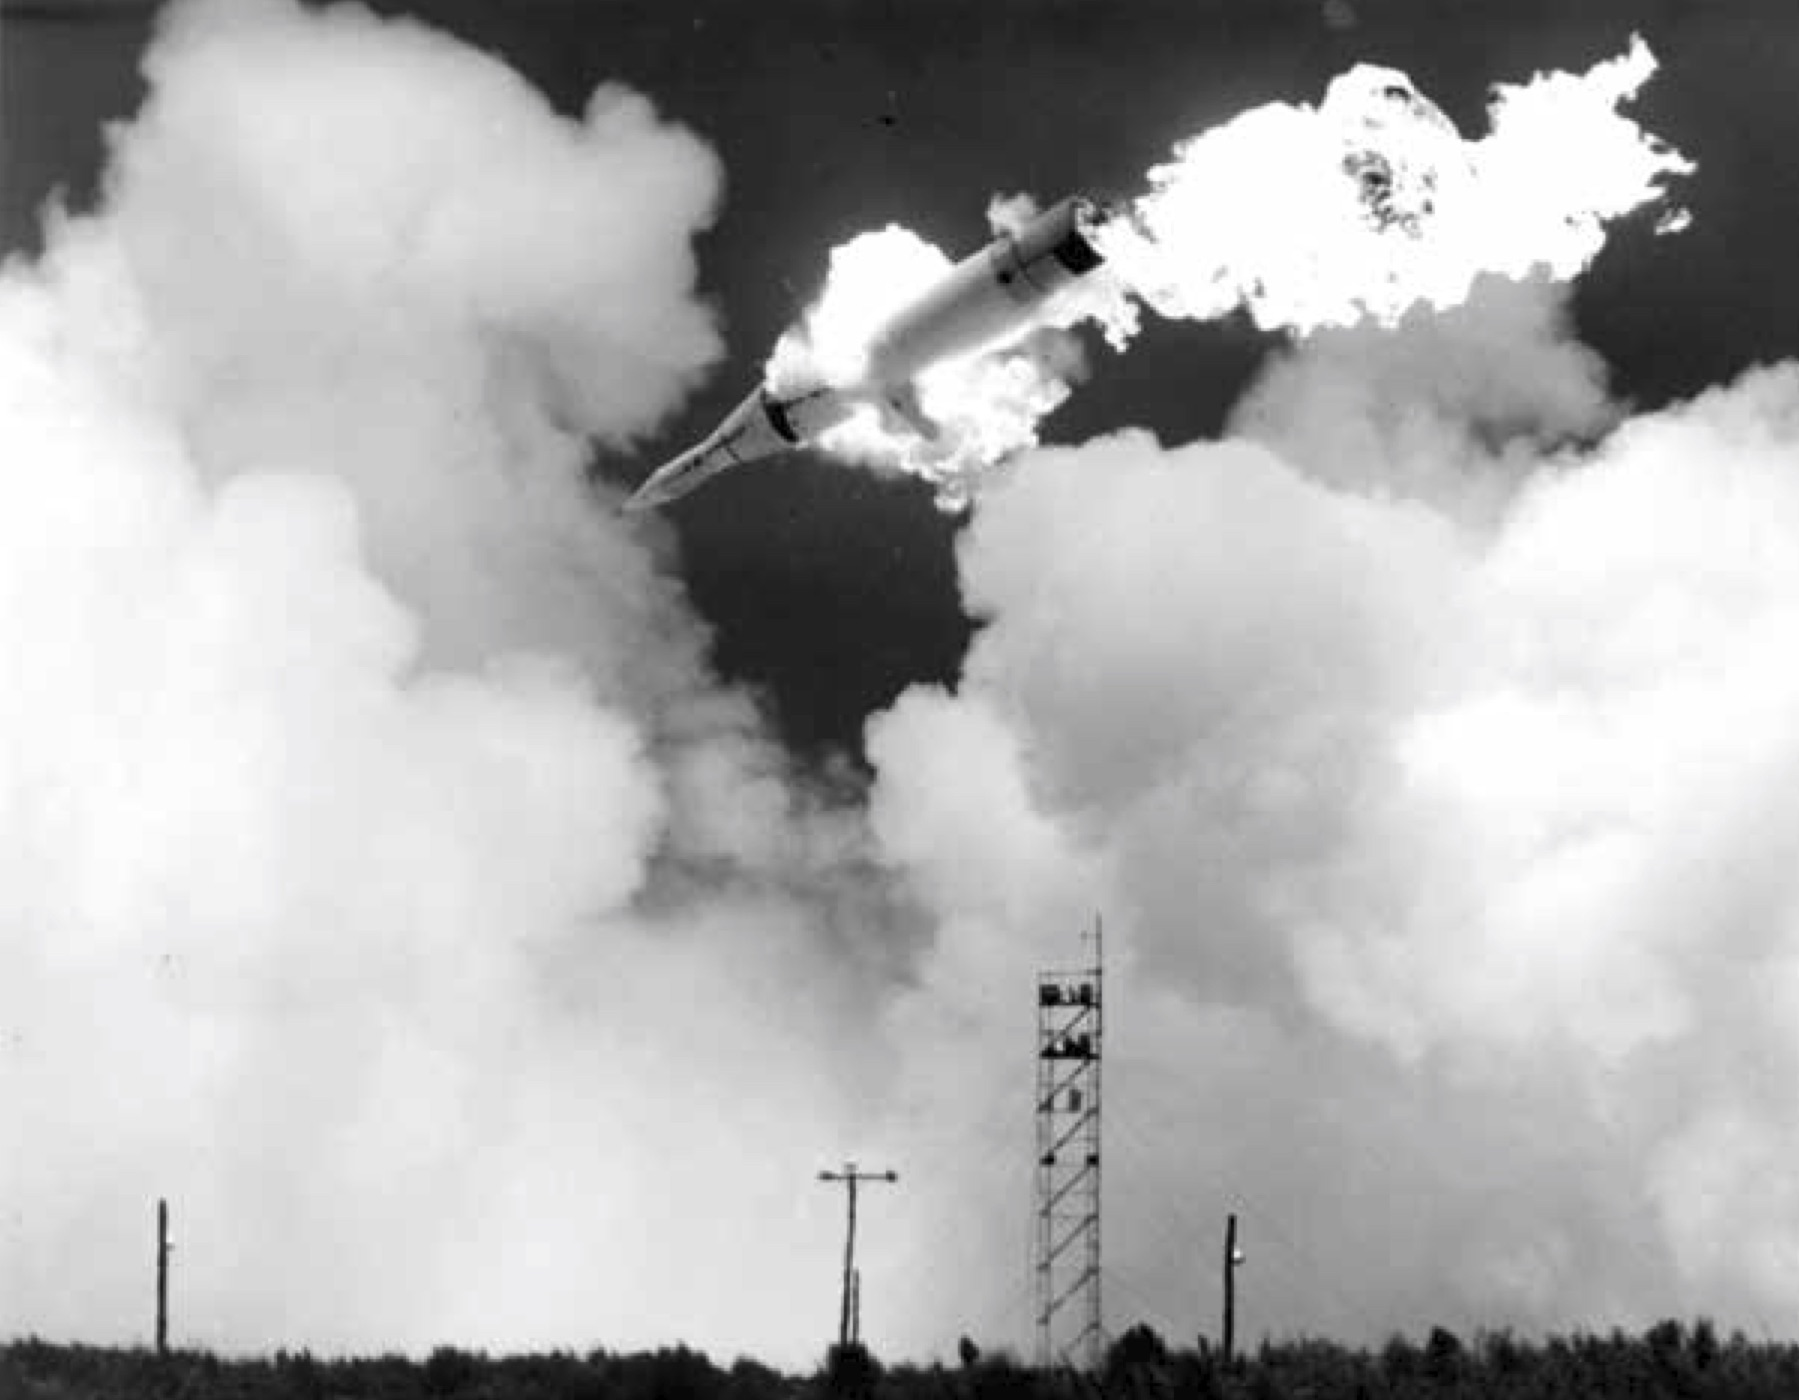 Photograph of the explosion of Juno 2 - July 16, 1959